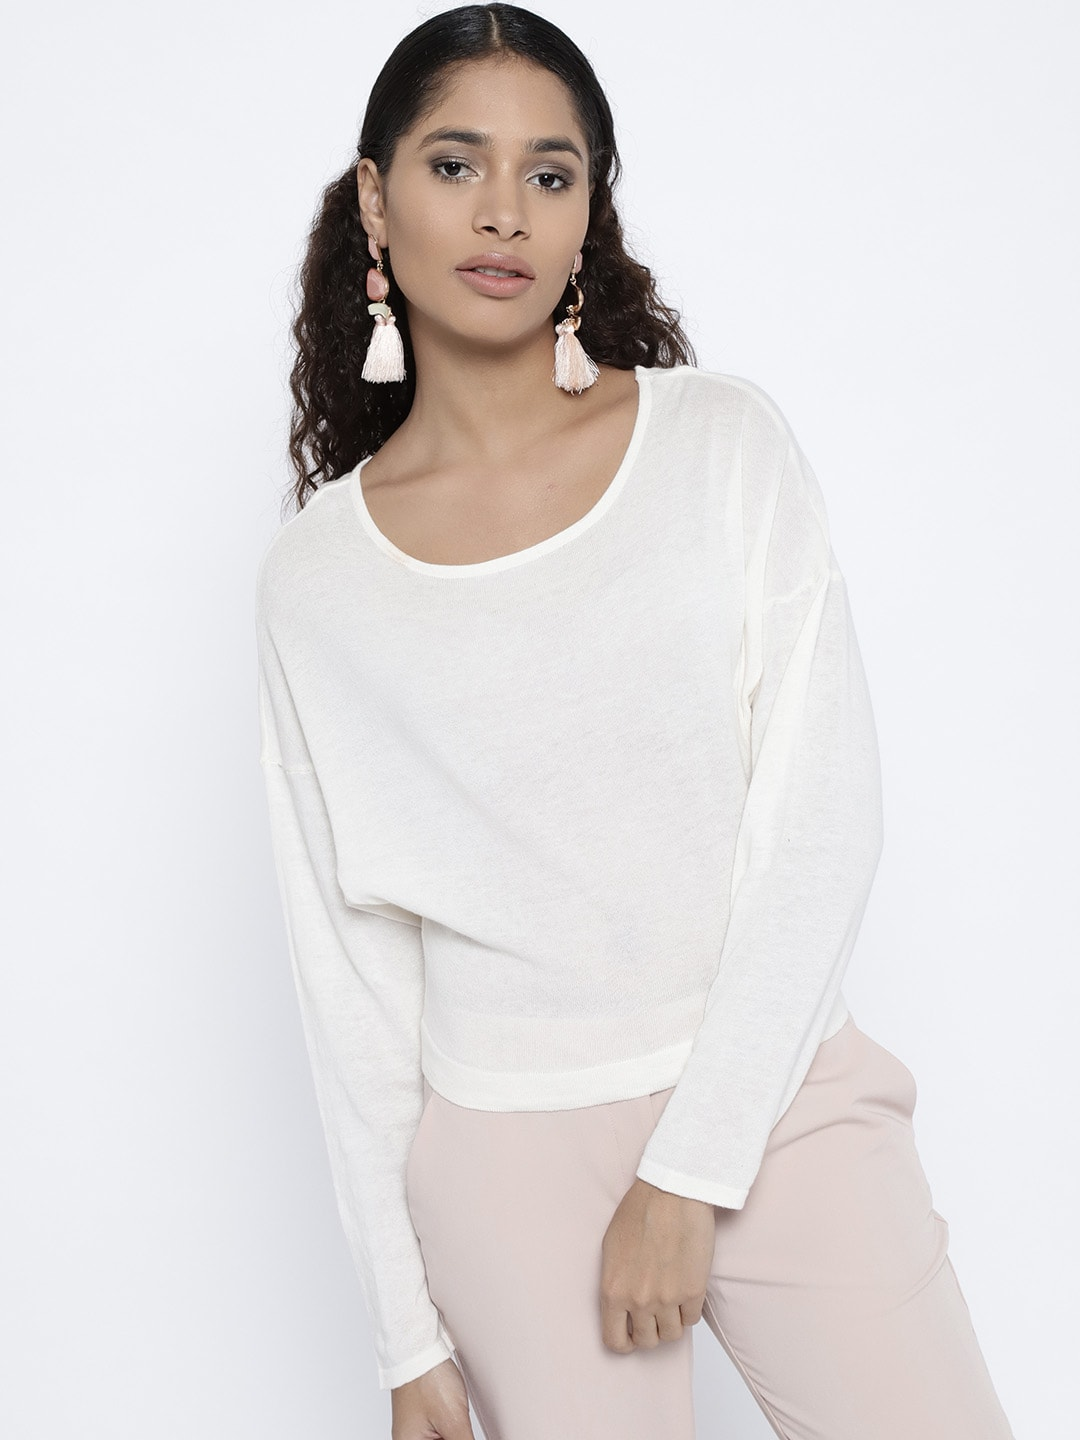 Mango Latest premium fall assortment for girls advise to wear for winter in 2019